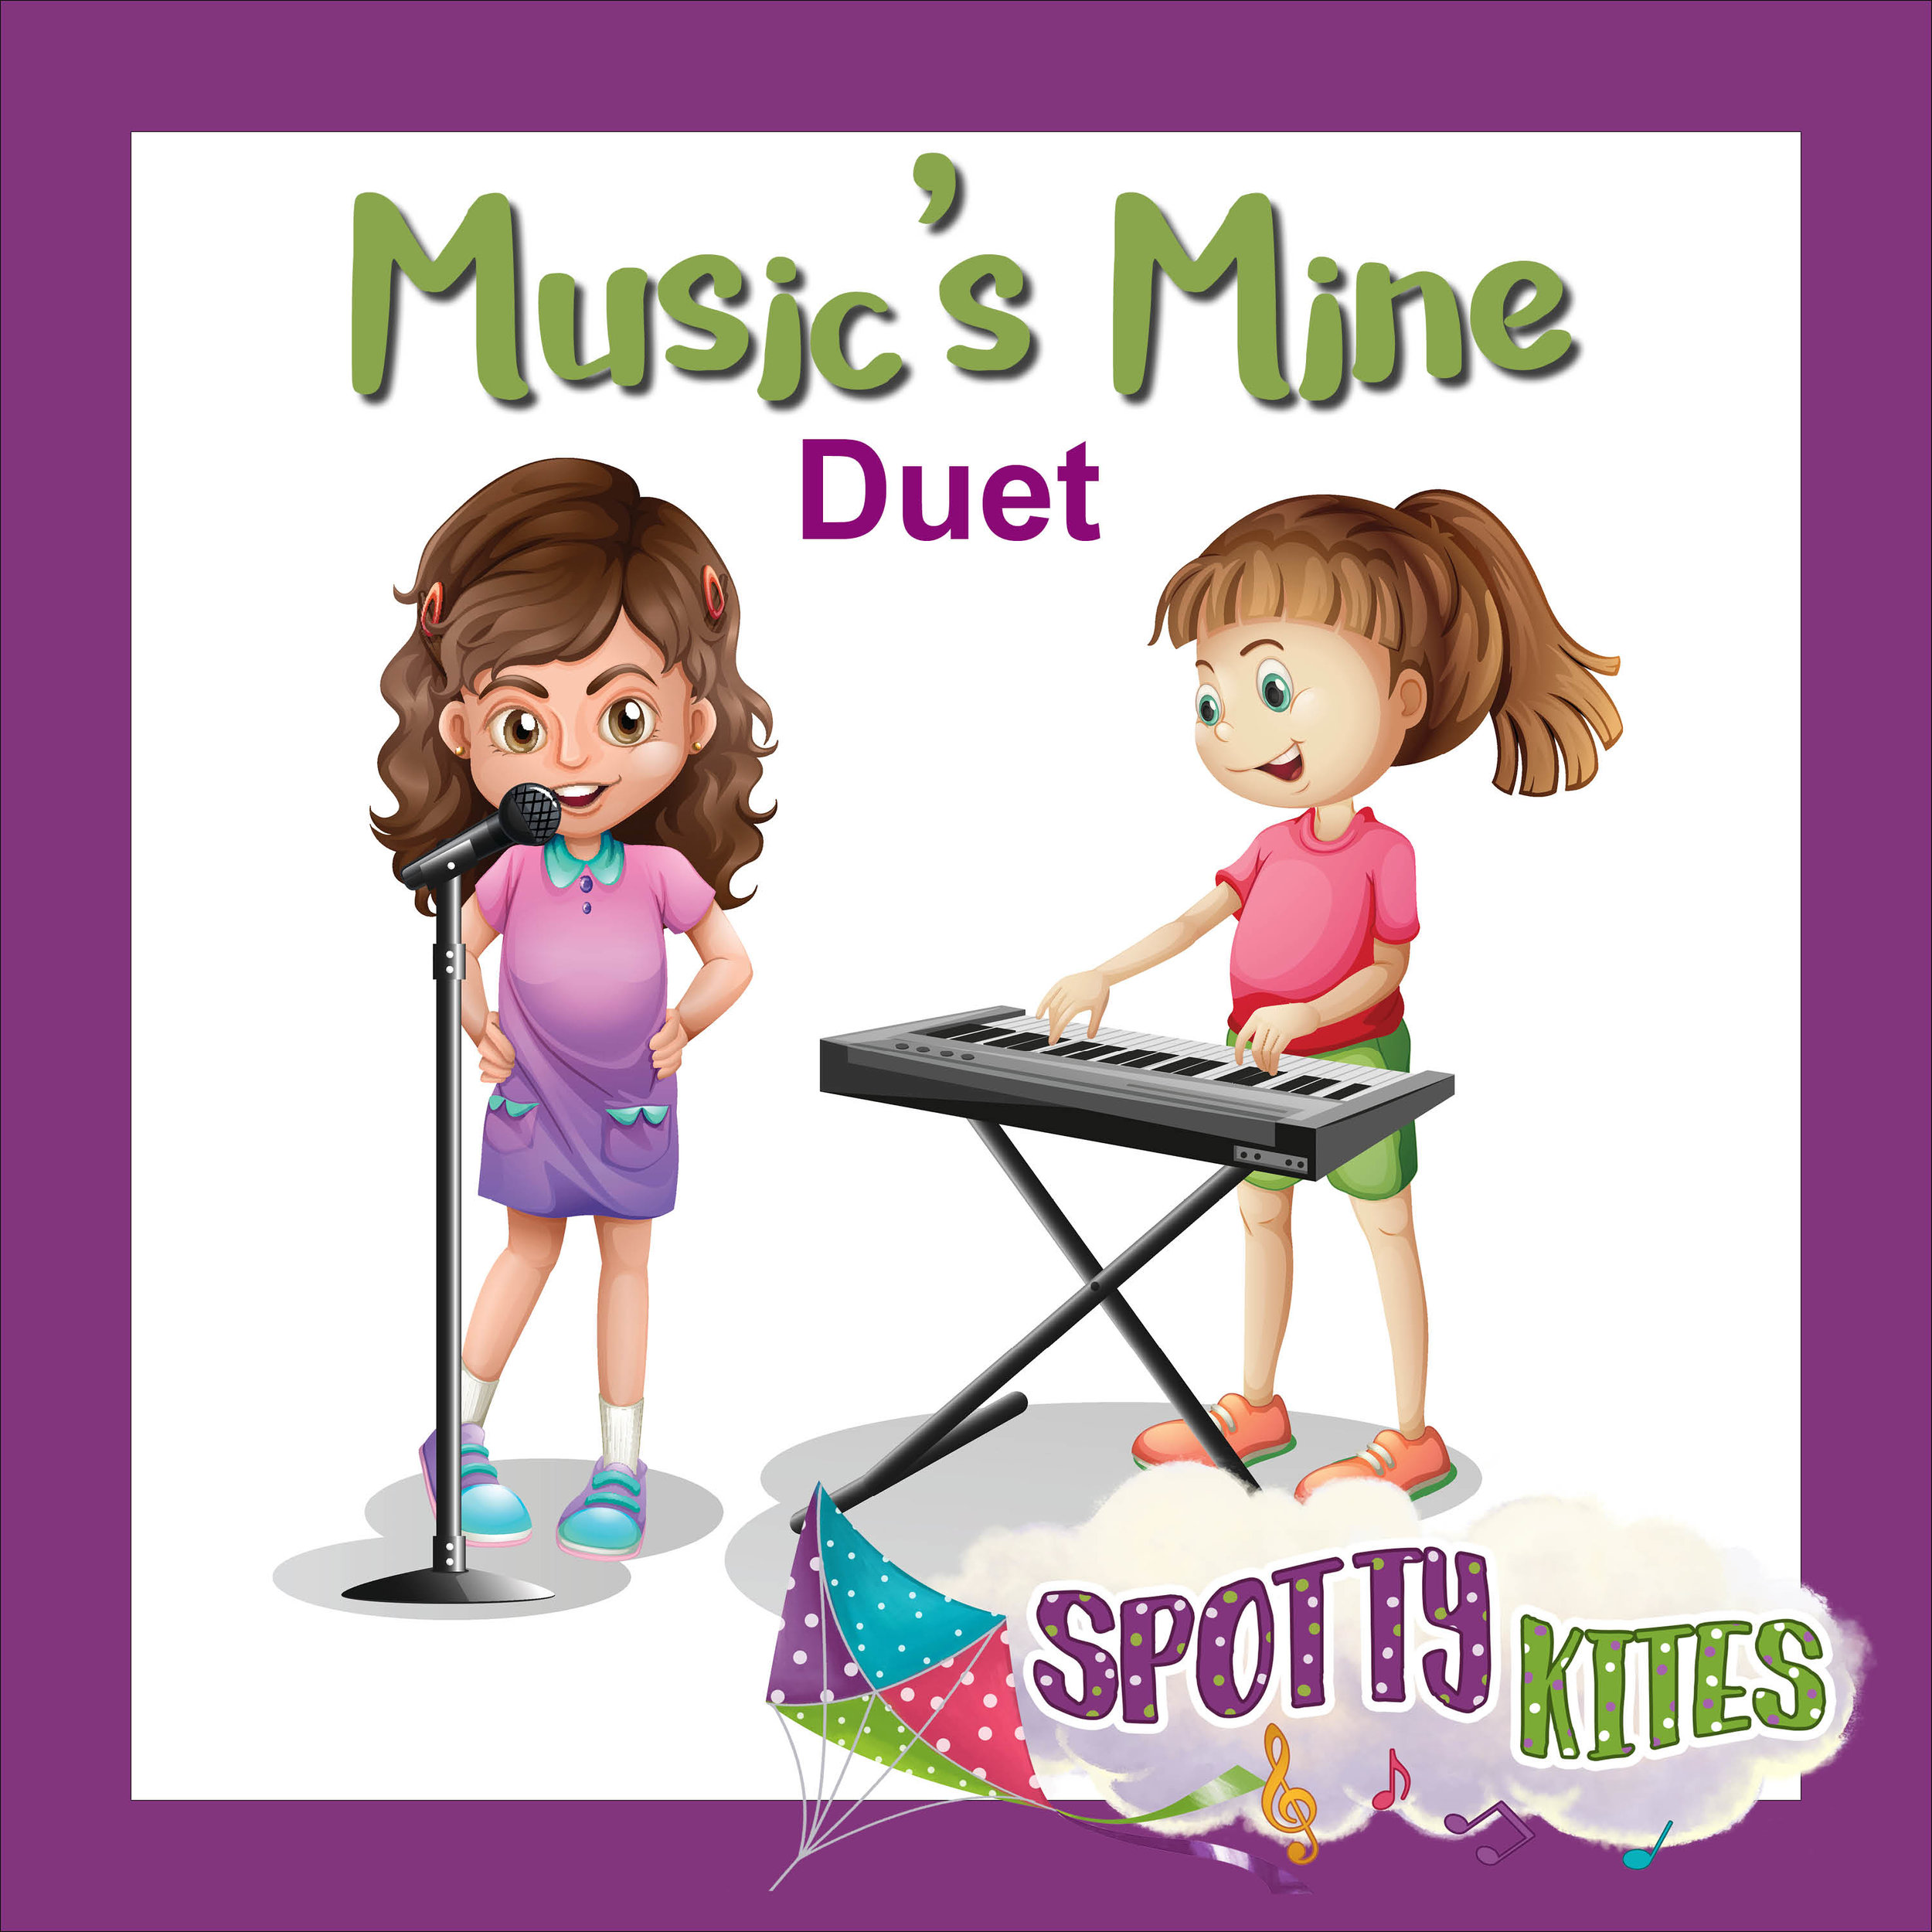 Spotty Kites Musics Mine Duet.jpg